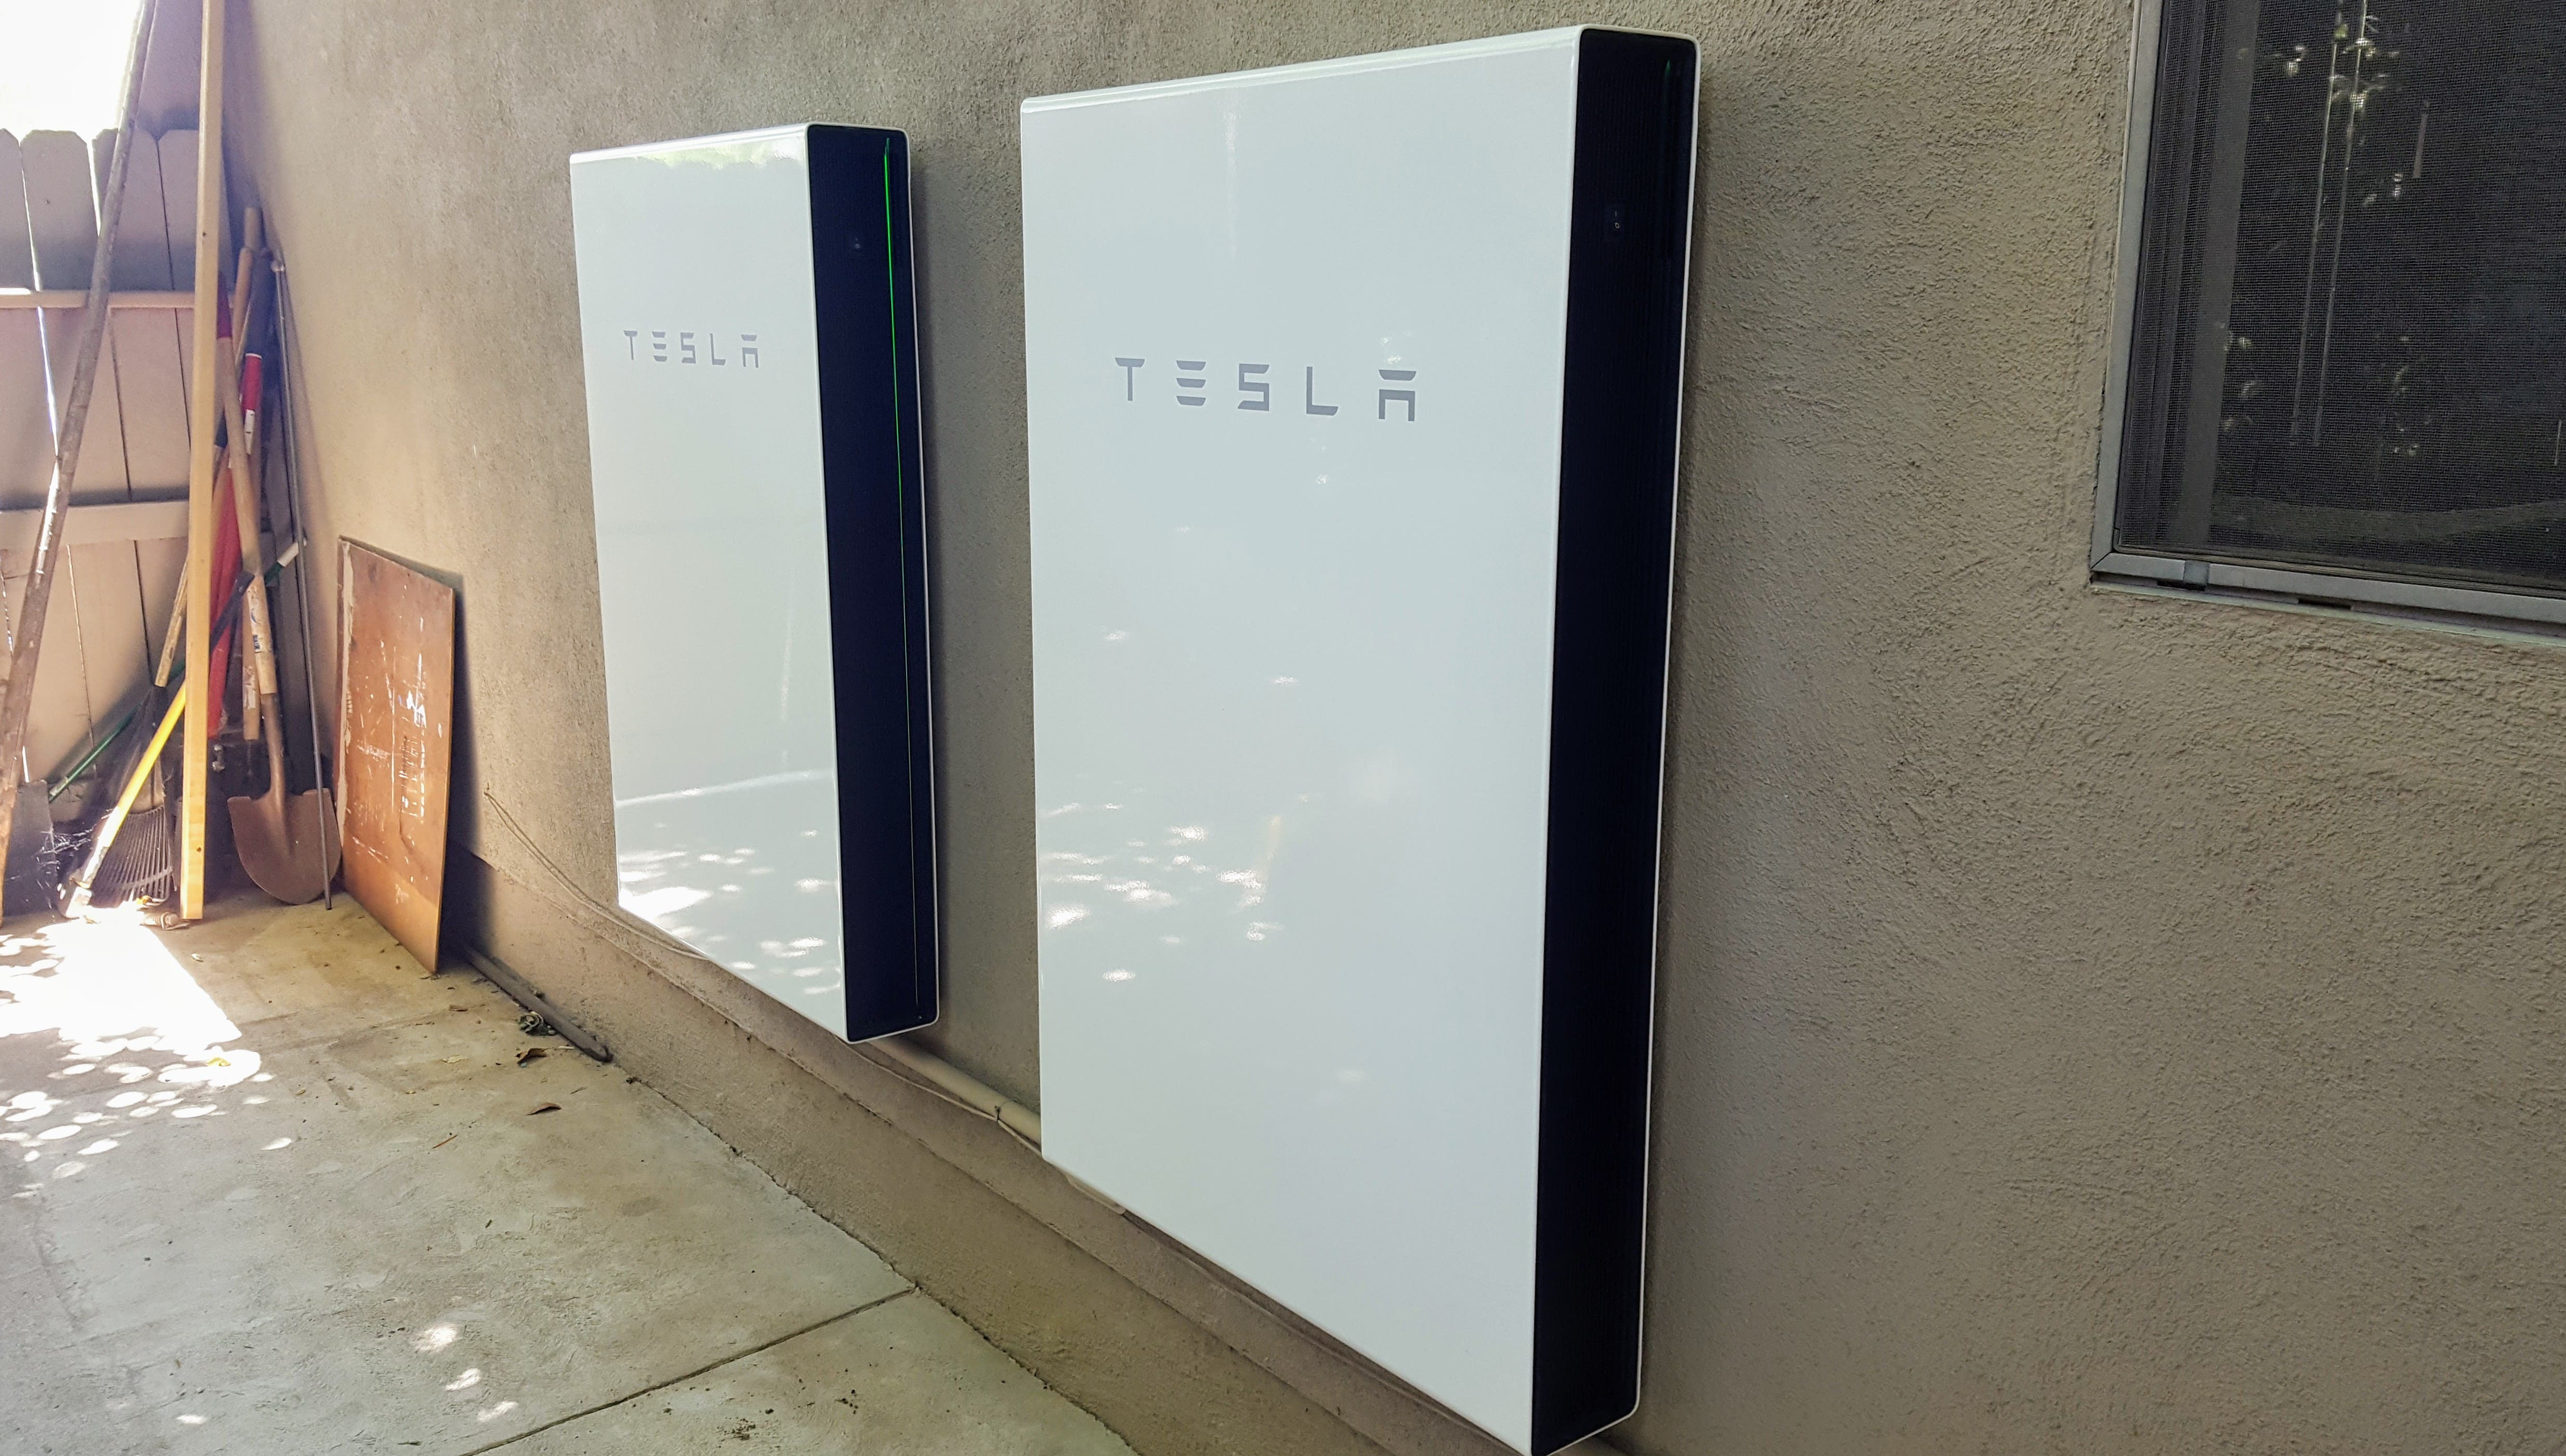 Double Tesla Powerwall Installation — Lessons Learned